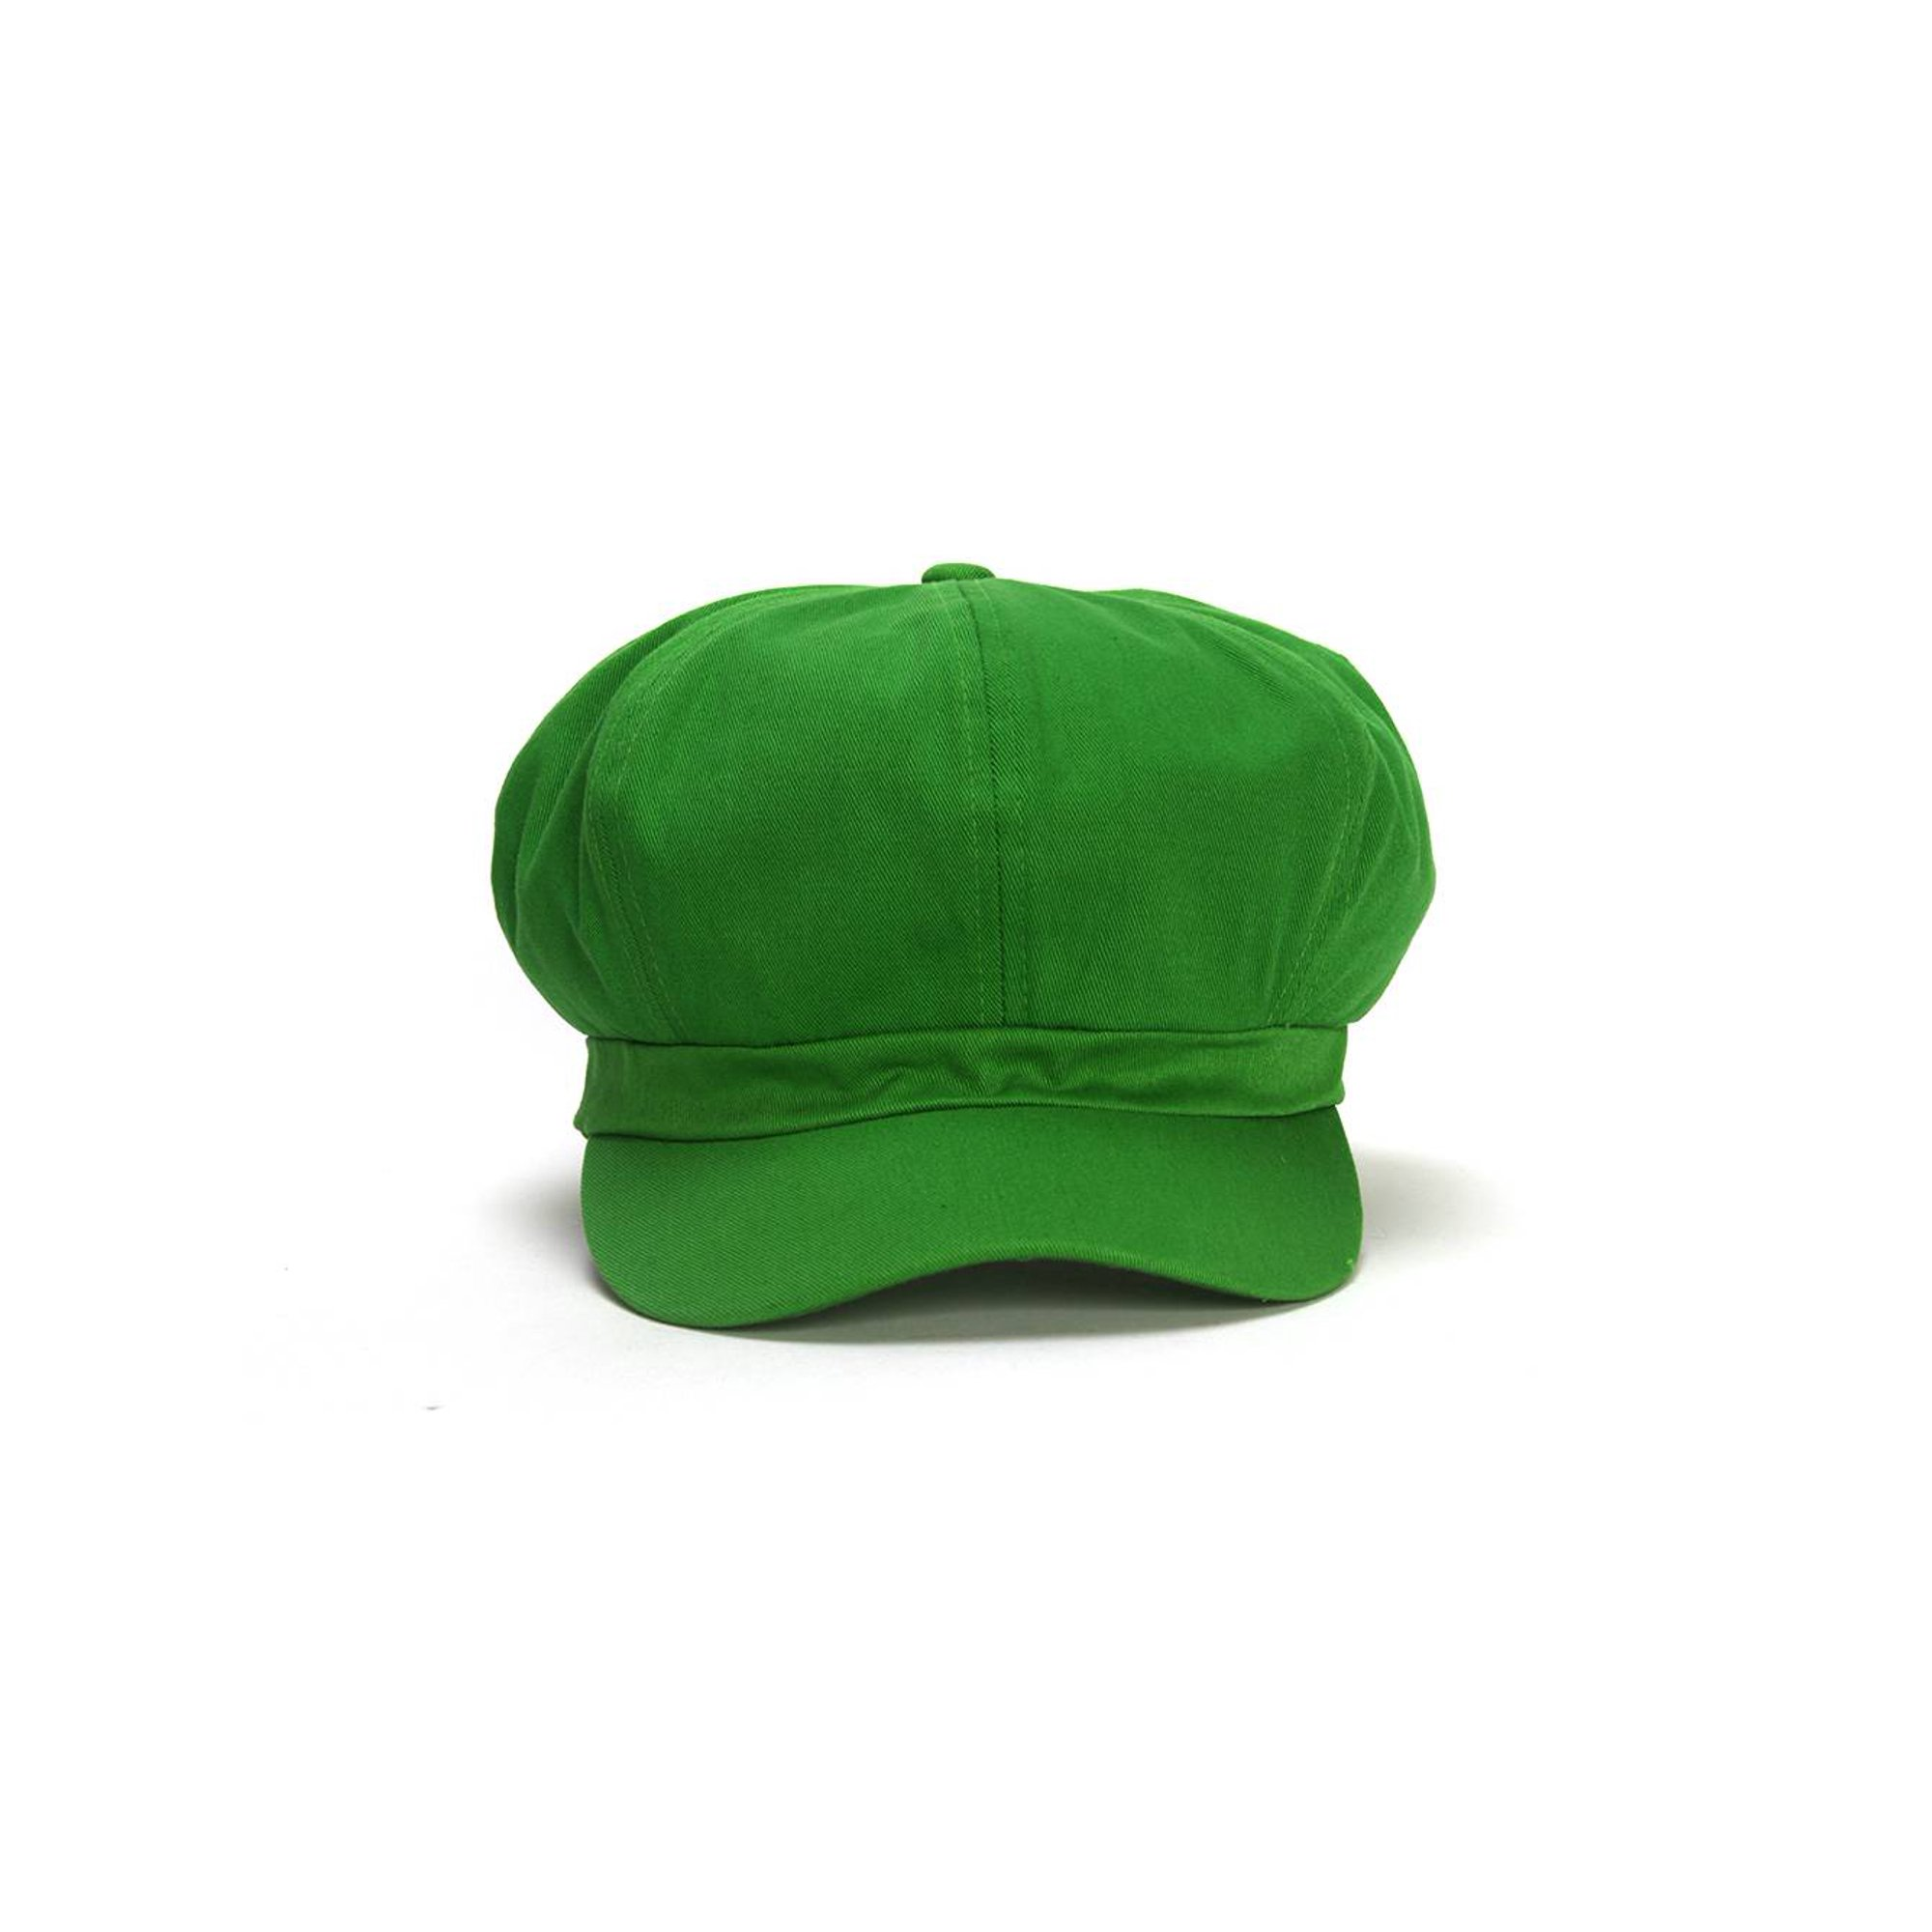 Cotton Elastic Newsboy Cap - Green | Walmart Canada